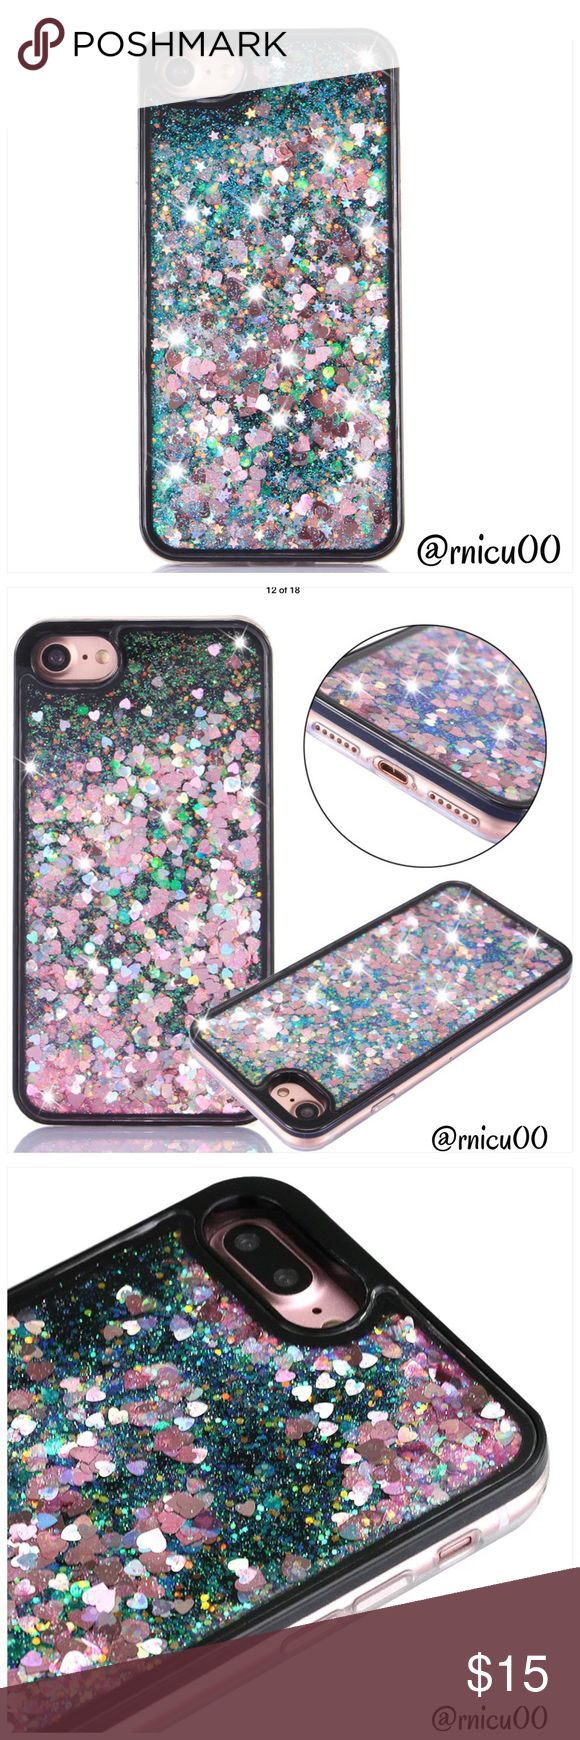 """Pink Heart Liquid Glitter iPhone Hardback Case! • Fits iPhone 6+ • 3D Liquid Glitter Quicksand  • Shockproof Hard Case Cover • Fitted case- Protects Phone from scratches, damage, dust & dirt • Access to all Buttons without removal   ➖Prices Firm, Bundle for Discount ➖""""Trade"""" & Lowball Offers will be ignored ➖Sales are Final, Please read Description & Ask Any Questions! Boutique Accessories Phone Cases"""